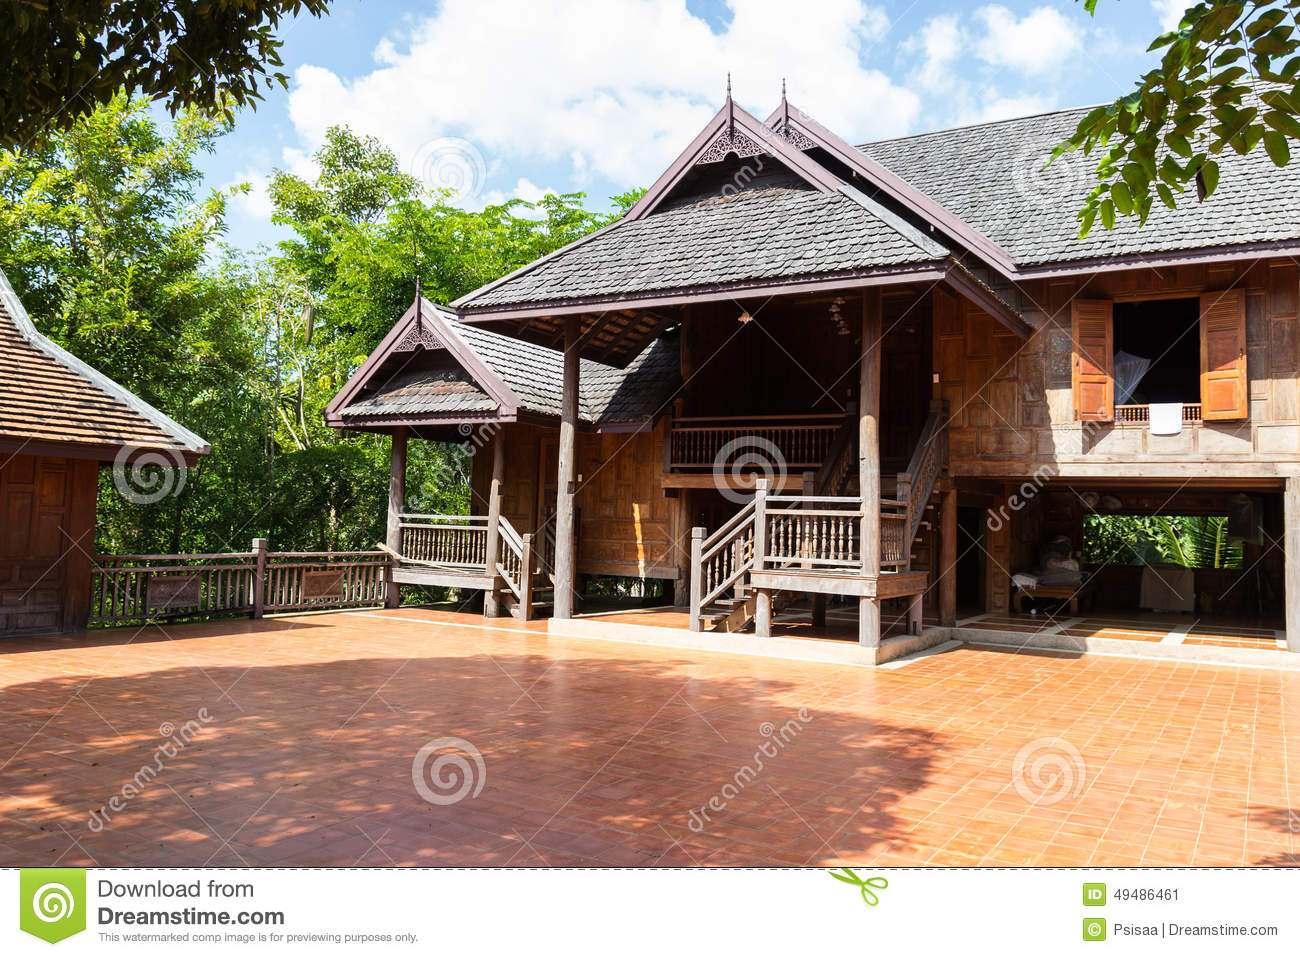 Thailand traditional old wooden house style building